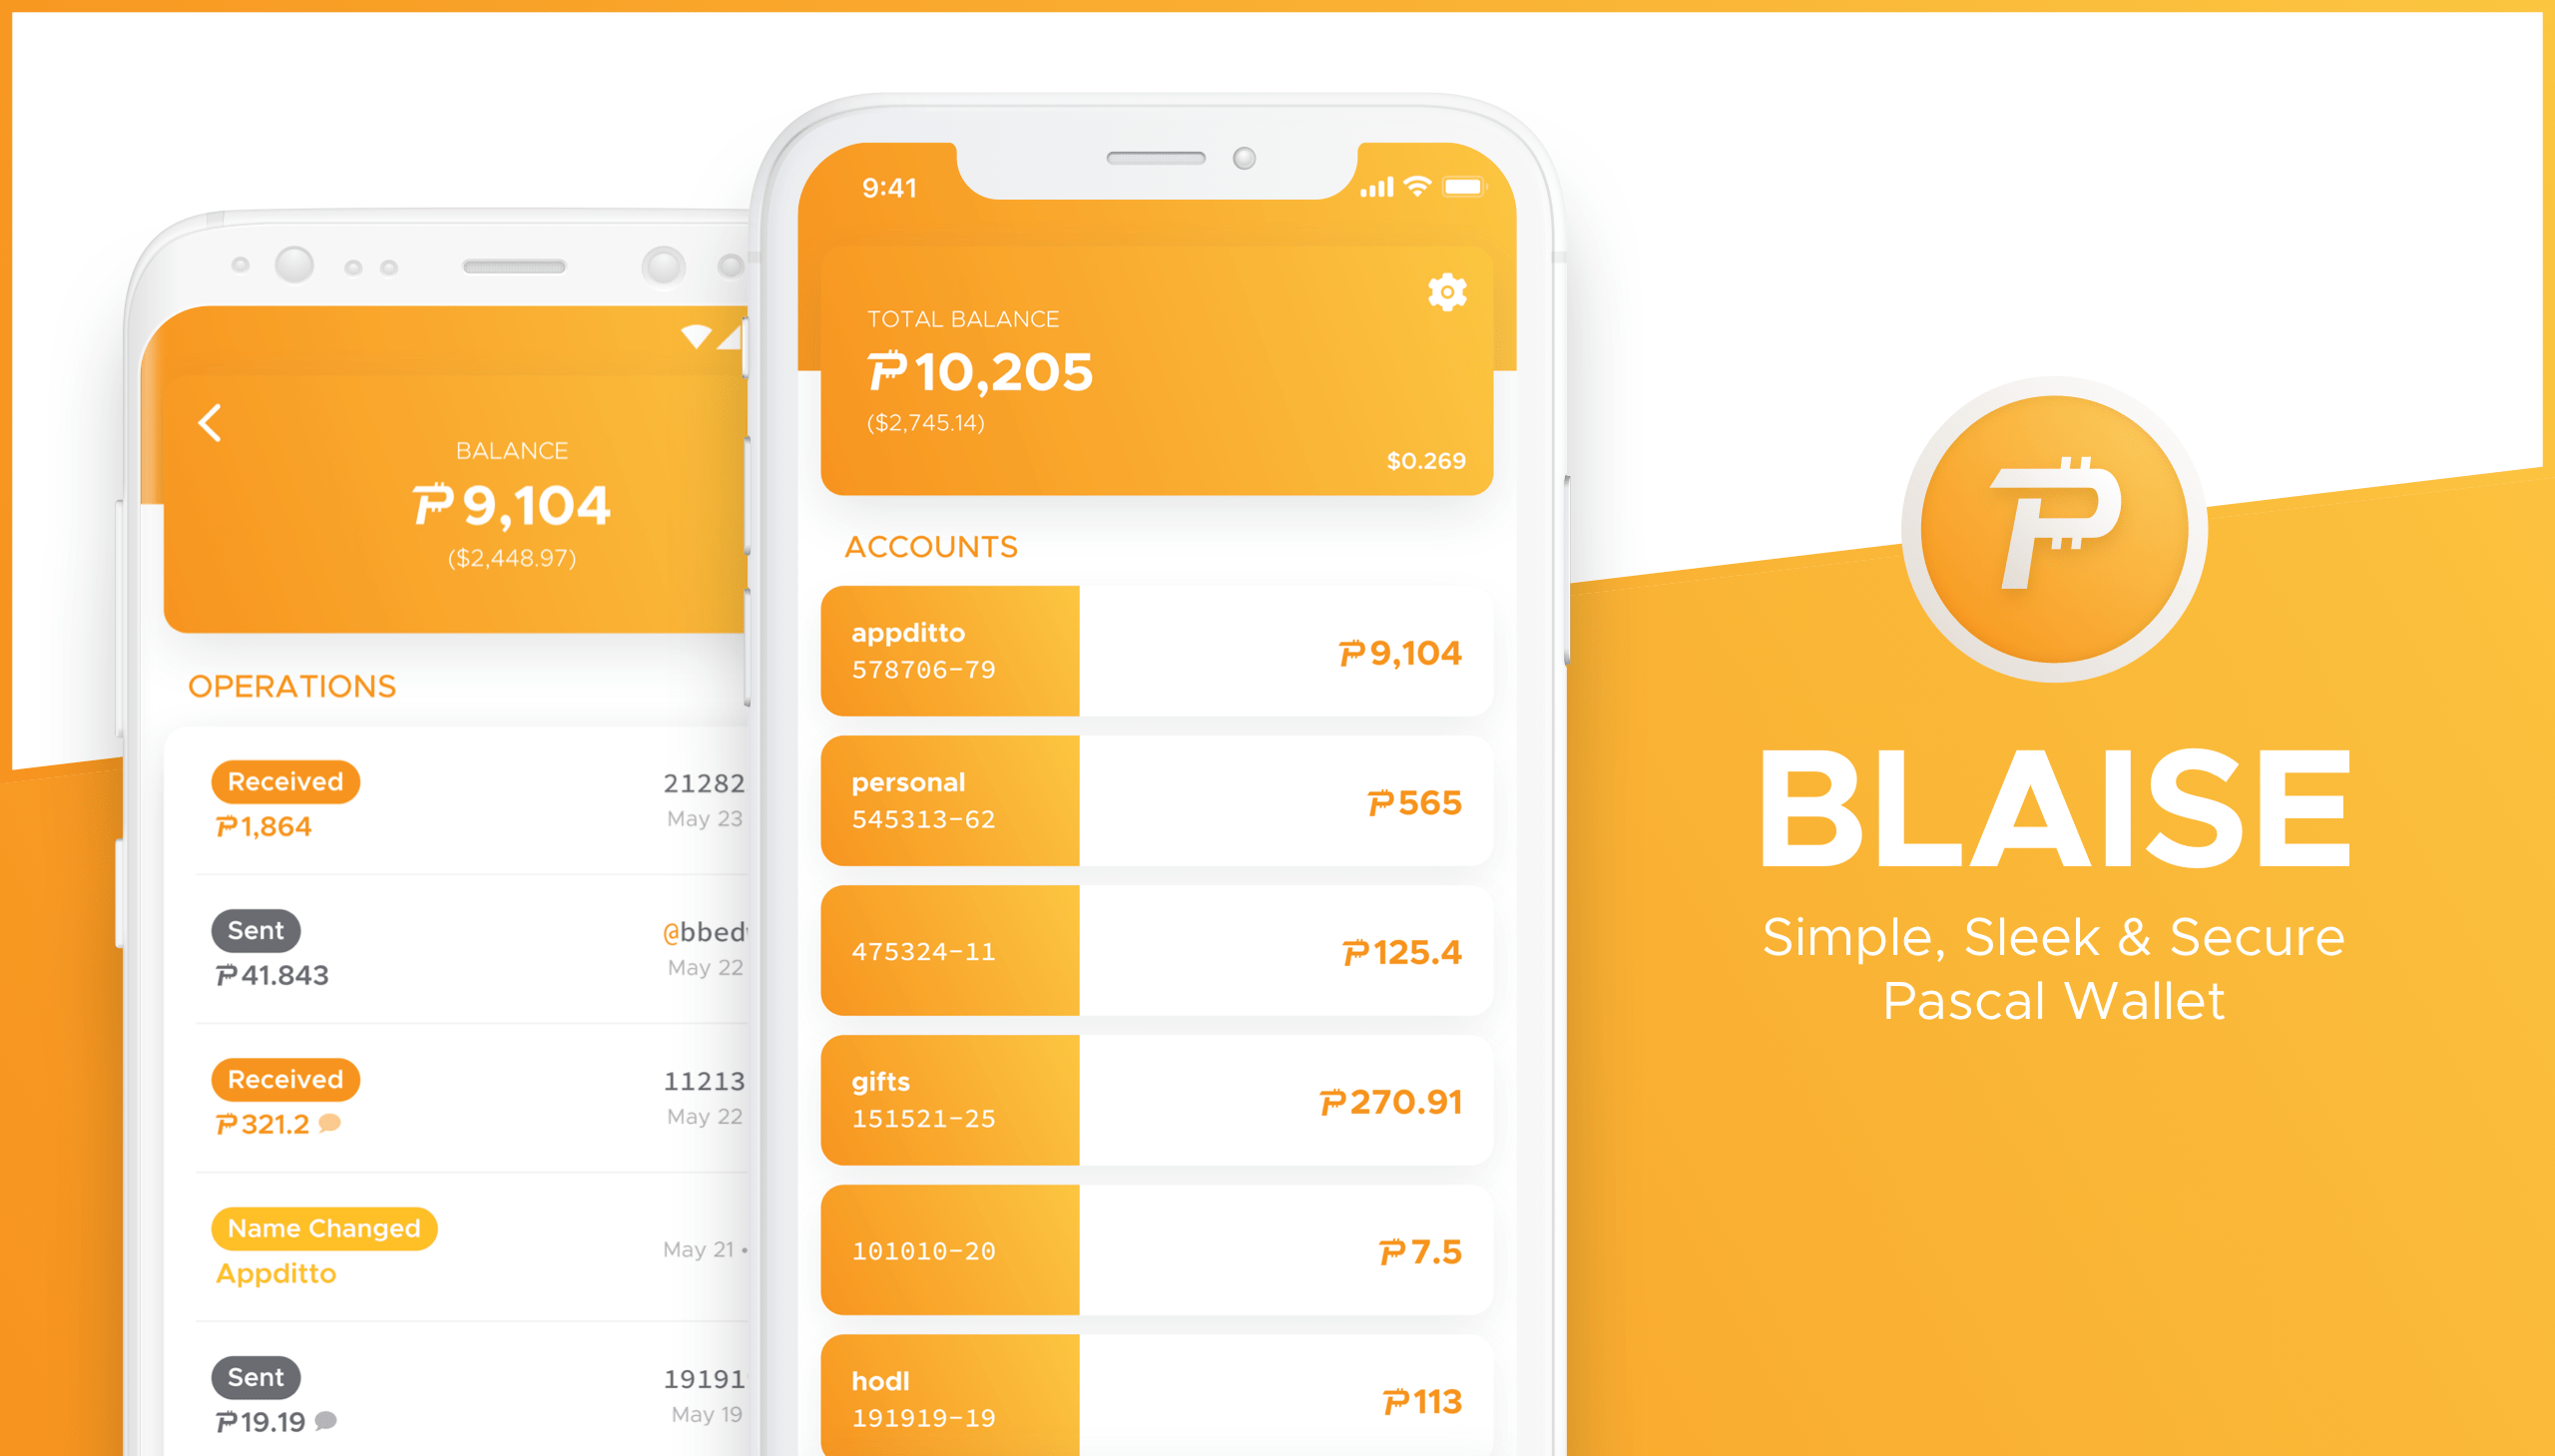 Meet with Blaise: Simple, Sleek & Secure Pascal Wallet